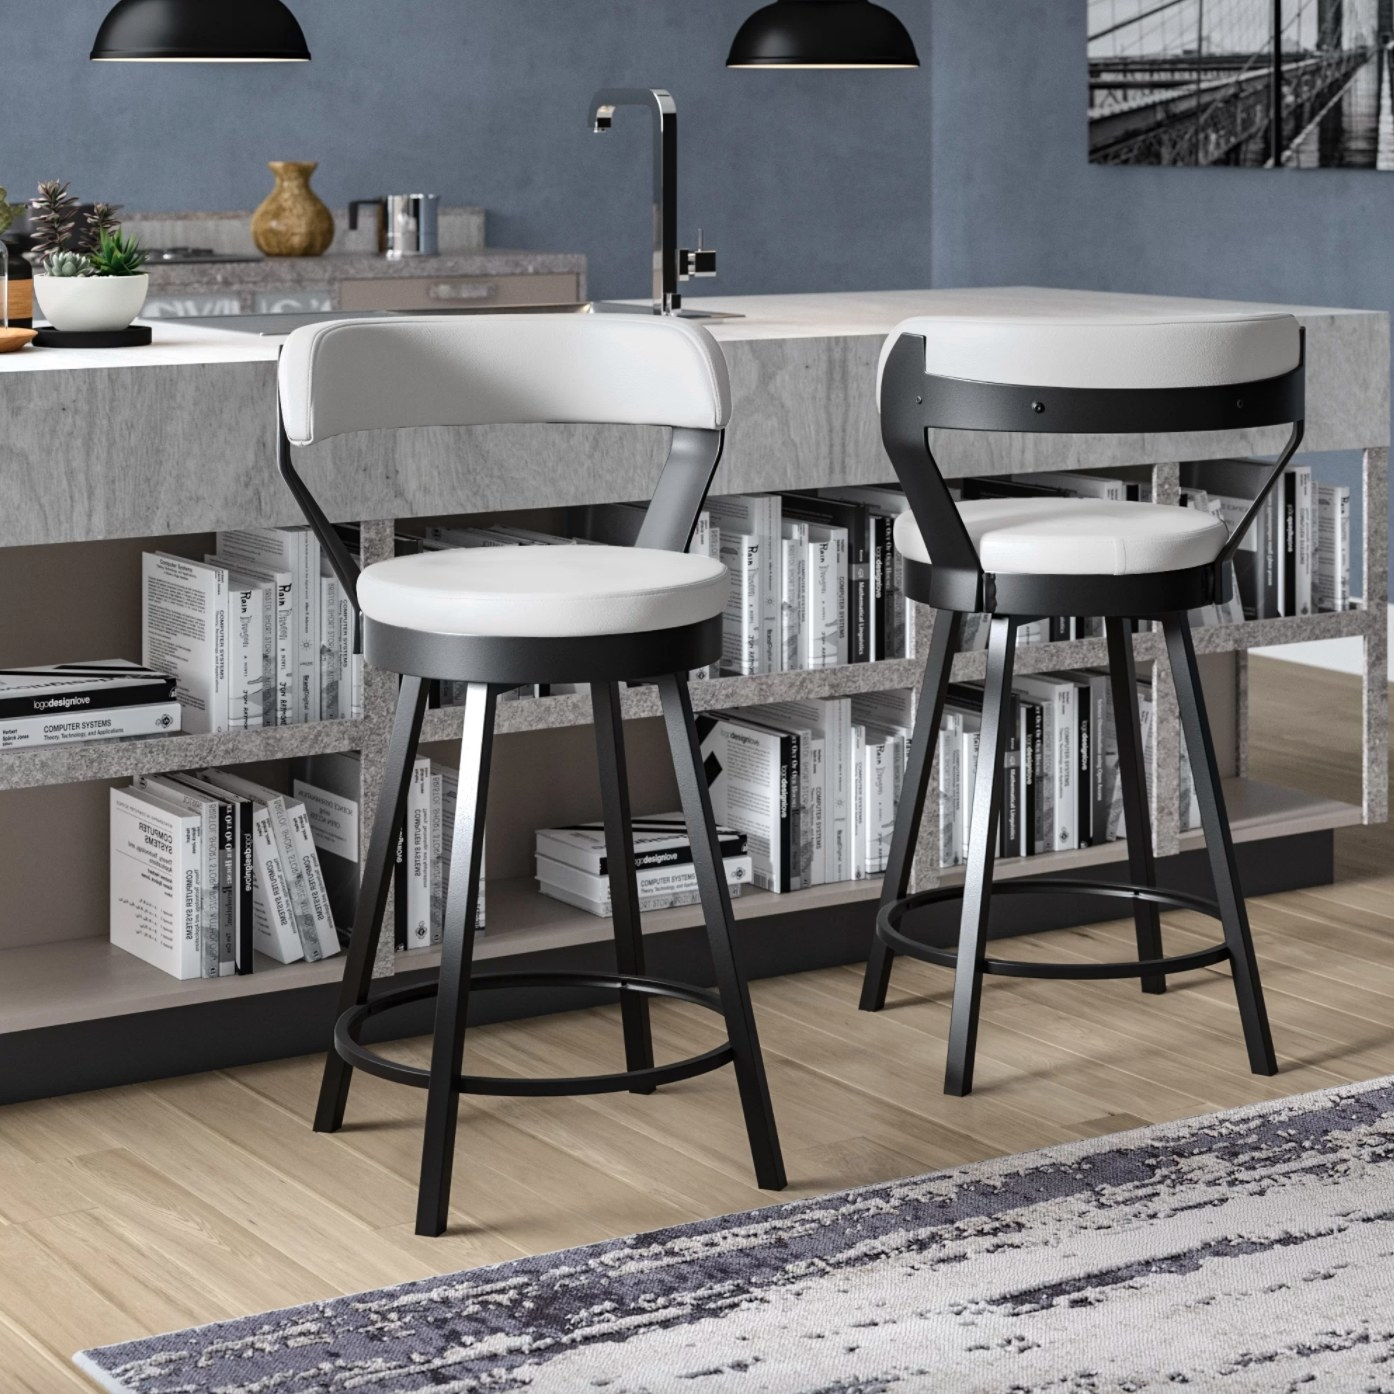 The bar stools with white seats